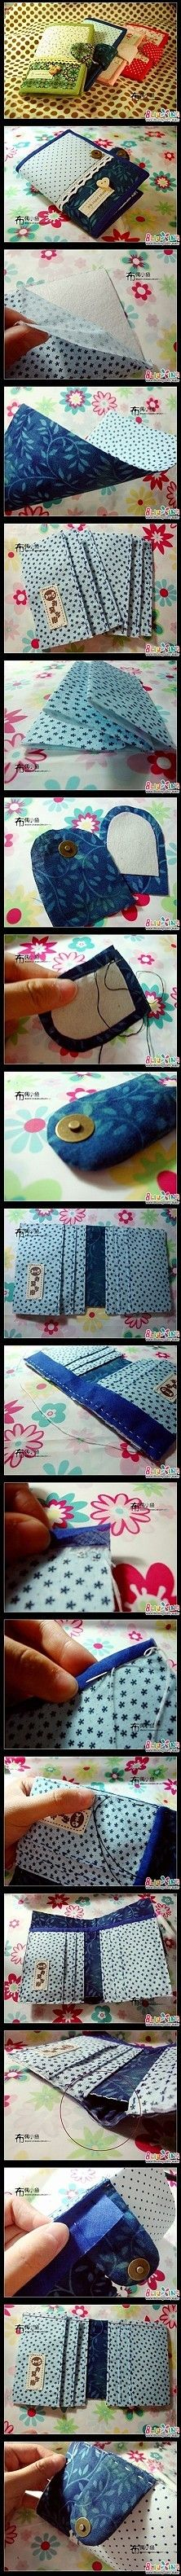 Reciclados e ideas paso a paso en imagenes. [og comm] 手工DIY- not in English but very clear pictures if you know how to sew[og comm] 手工DIY- not in English but very clear pictures if you know how to sew Diy Wallet, Fabric Wallet, Wallet Tutorial, Fabric Bags, Small Wallet, Sewing Hacks, Sewing Tutorials, Sewing Patterns, Patchwork Bags